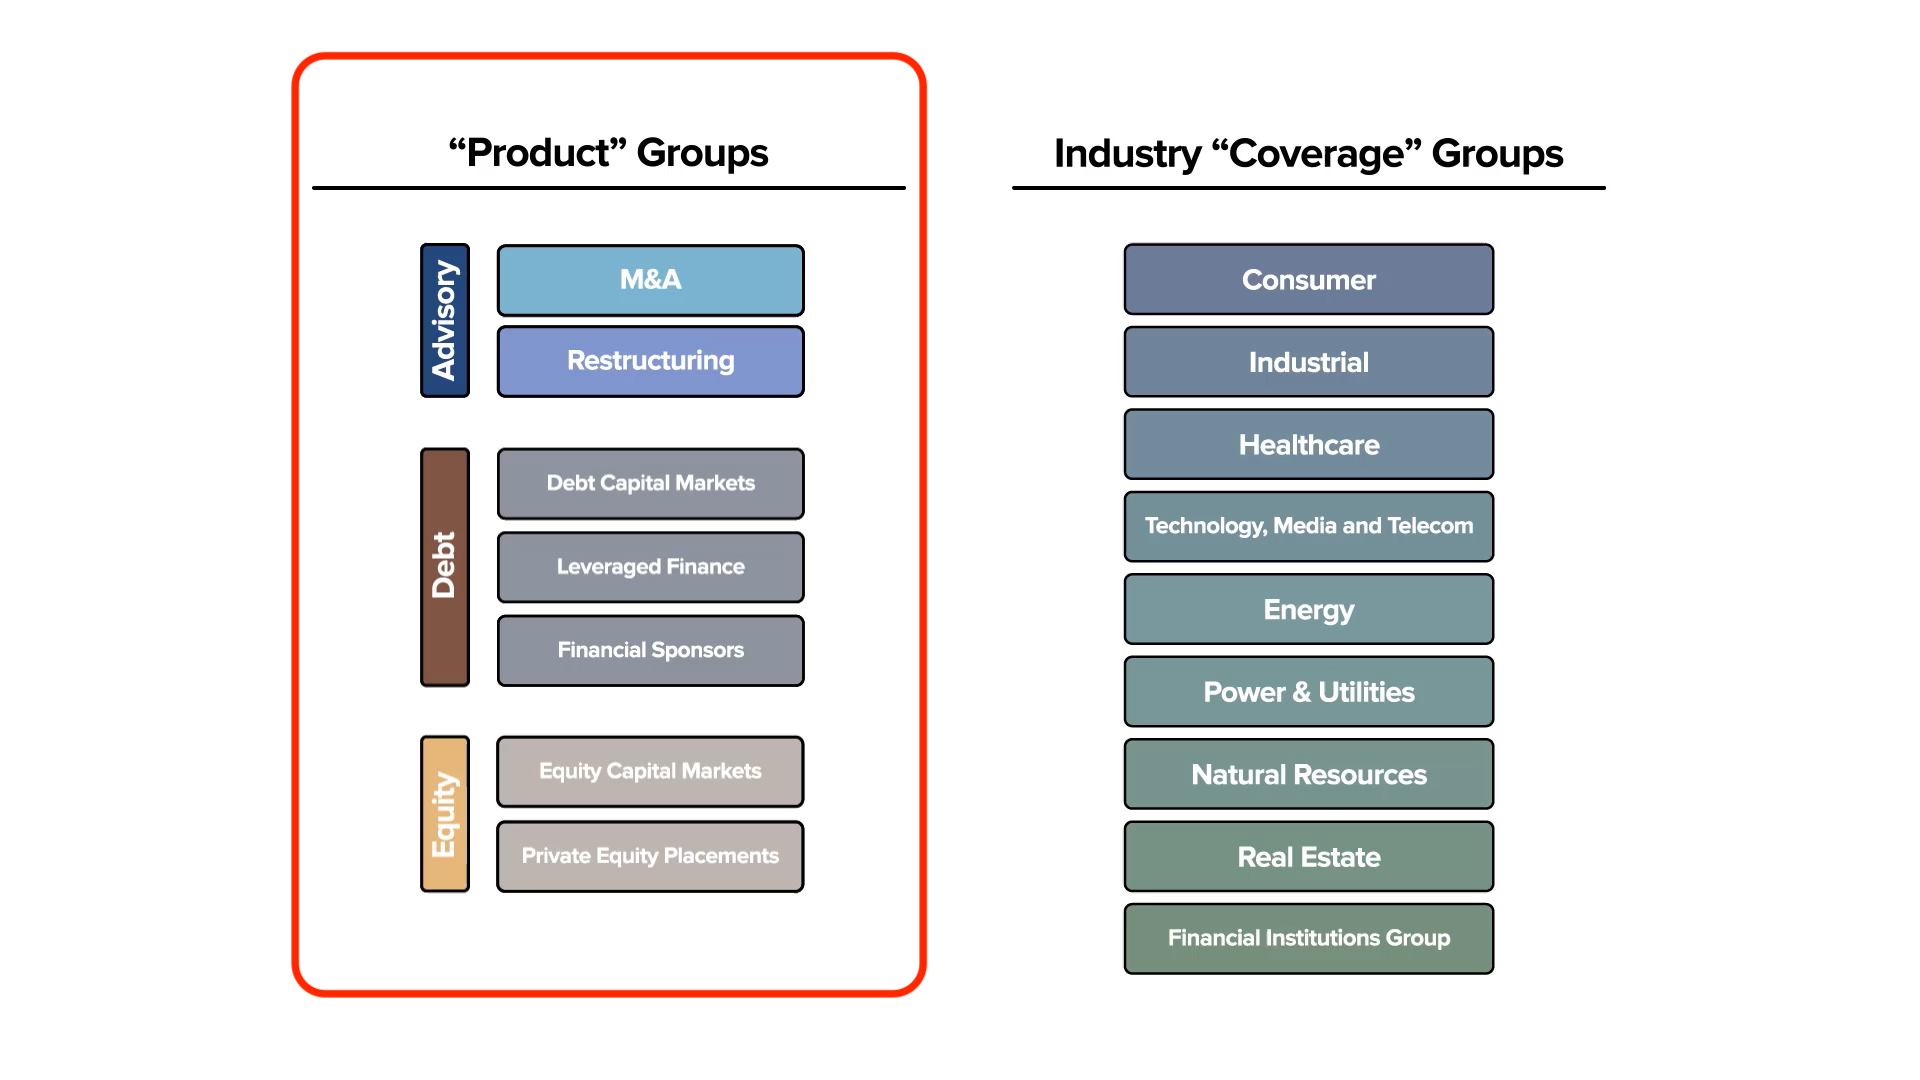 Product Bankers vs Industry Bankers